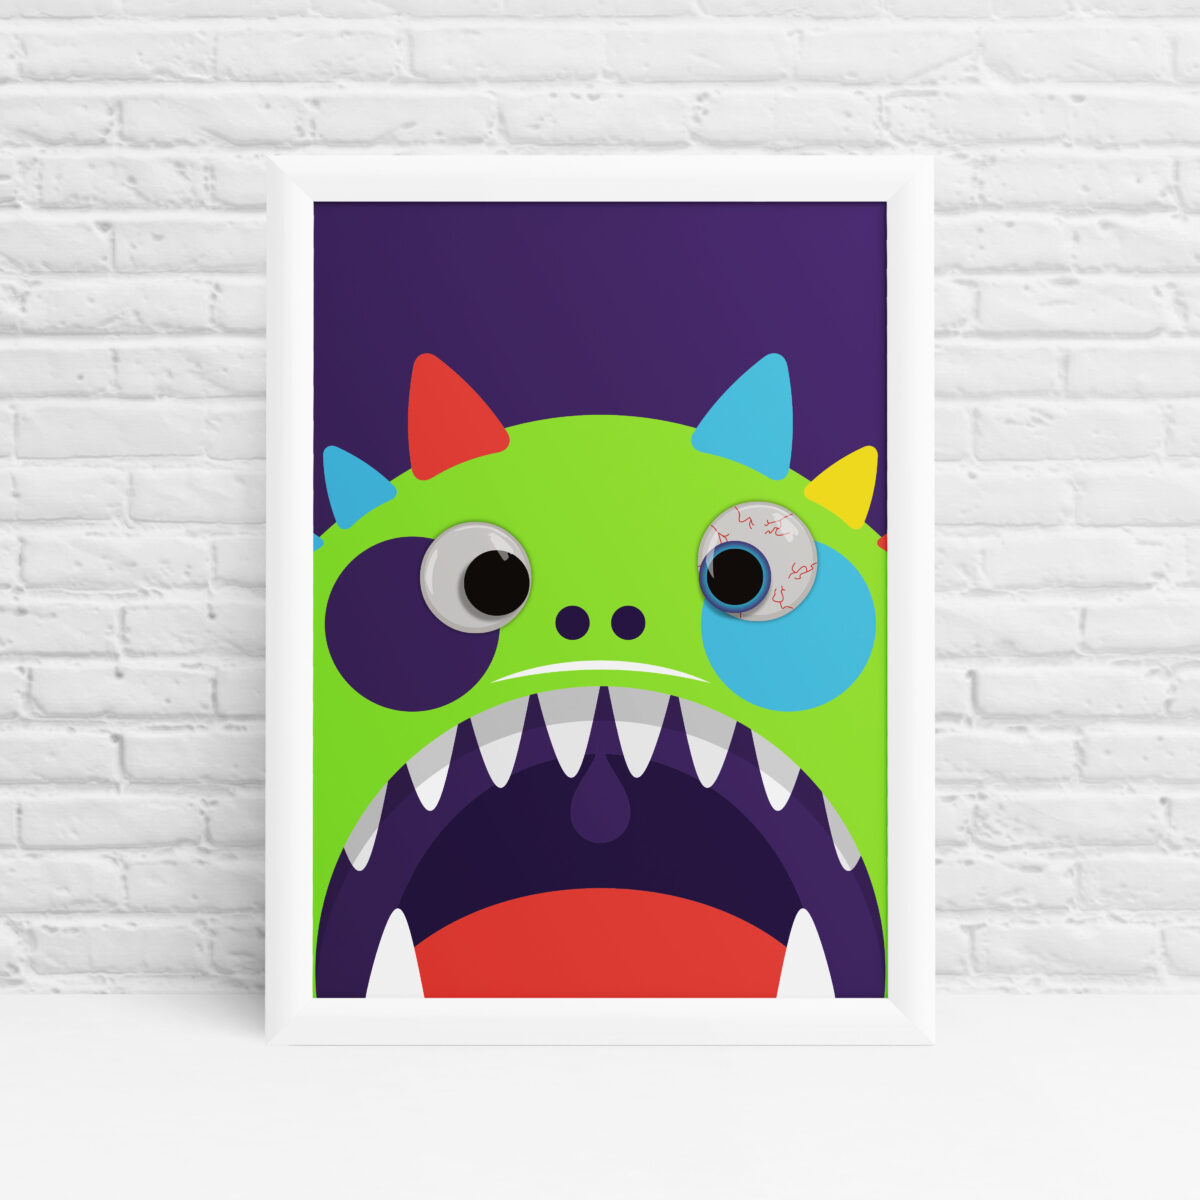 Googly eye monster colourful nursery print by Ibbleobble®